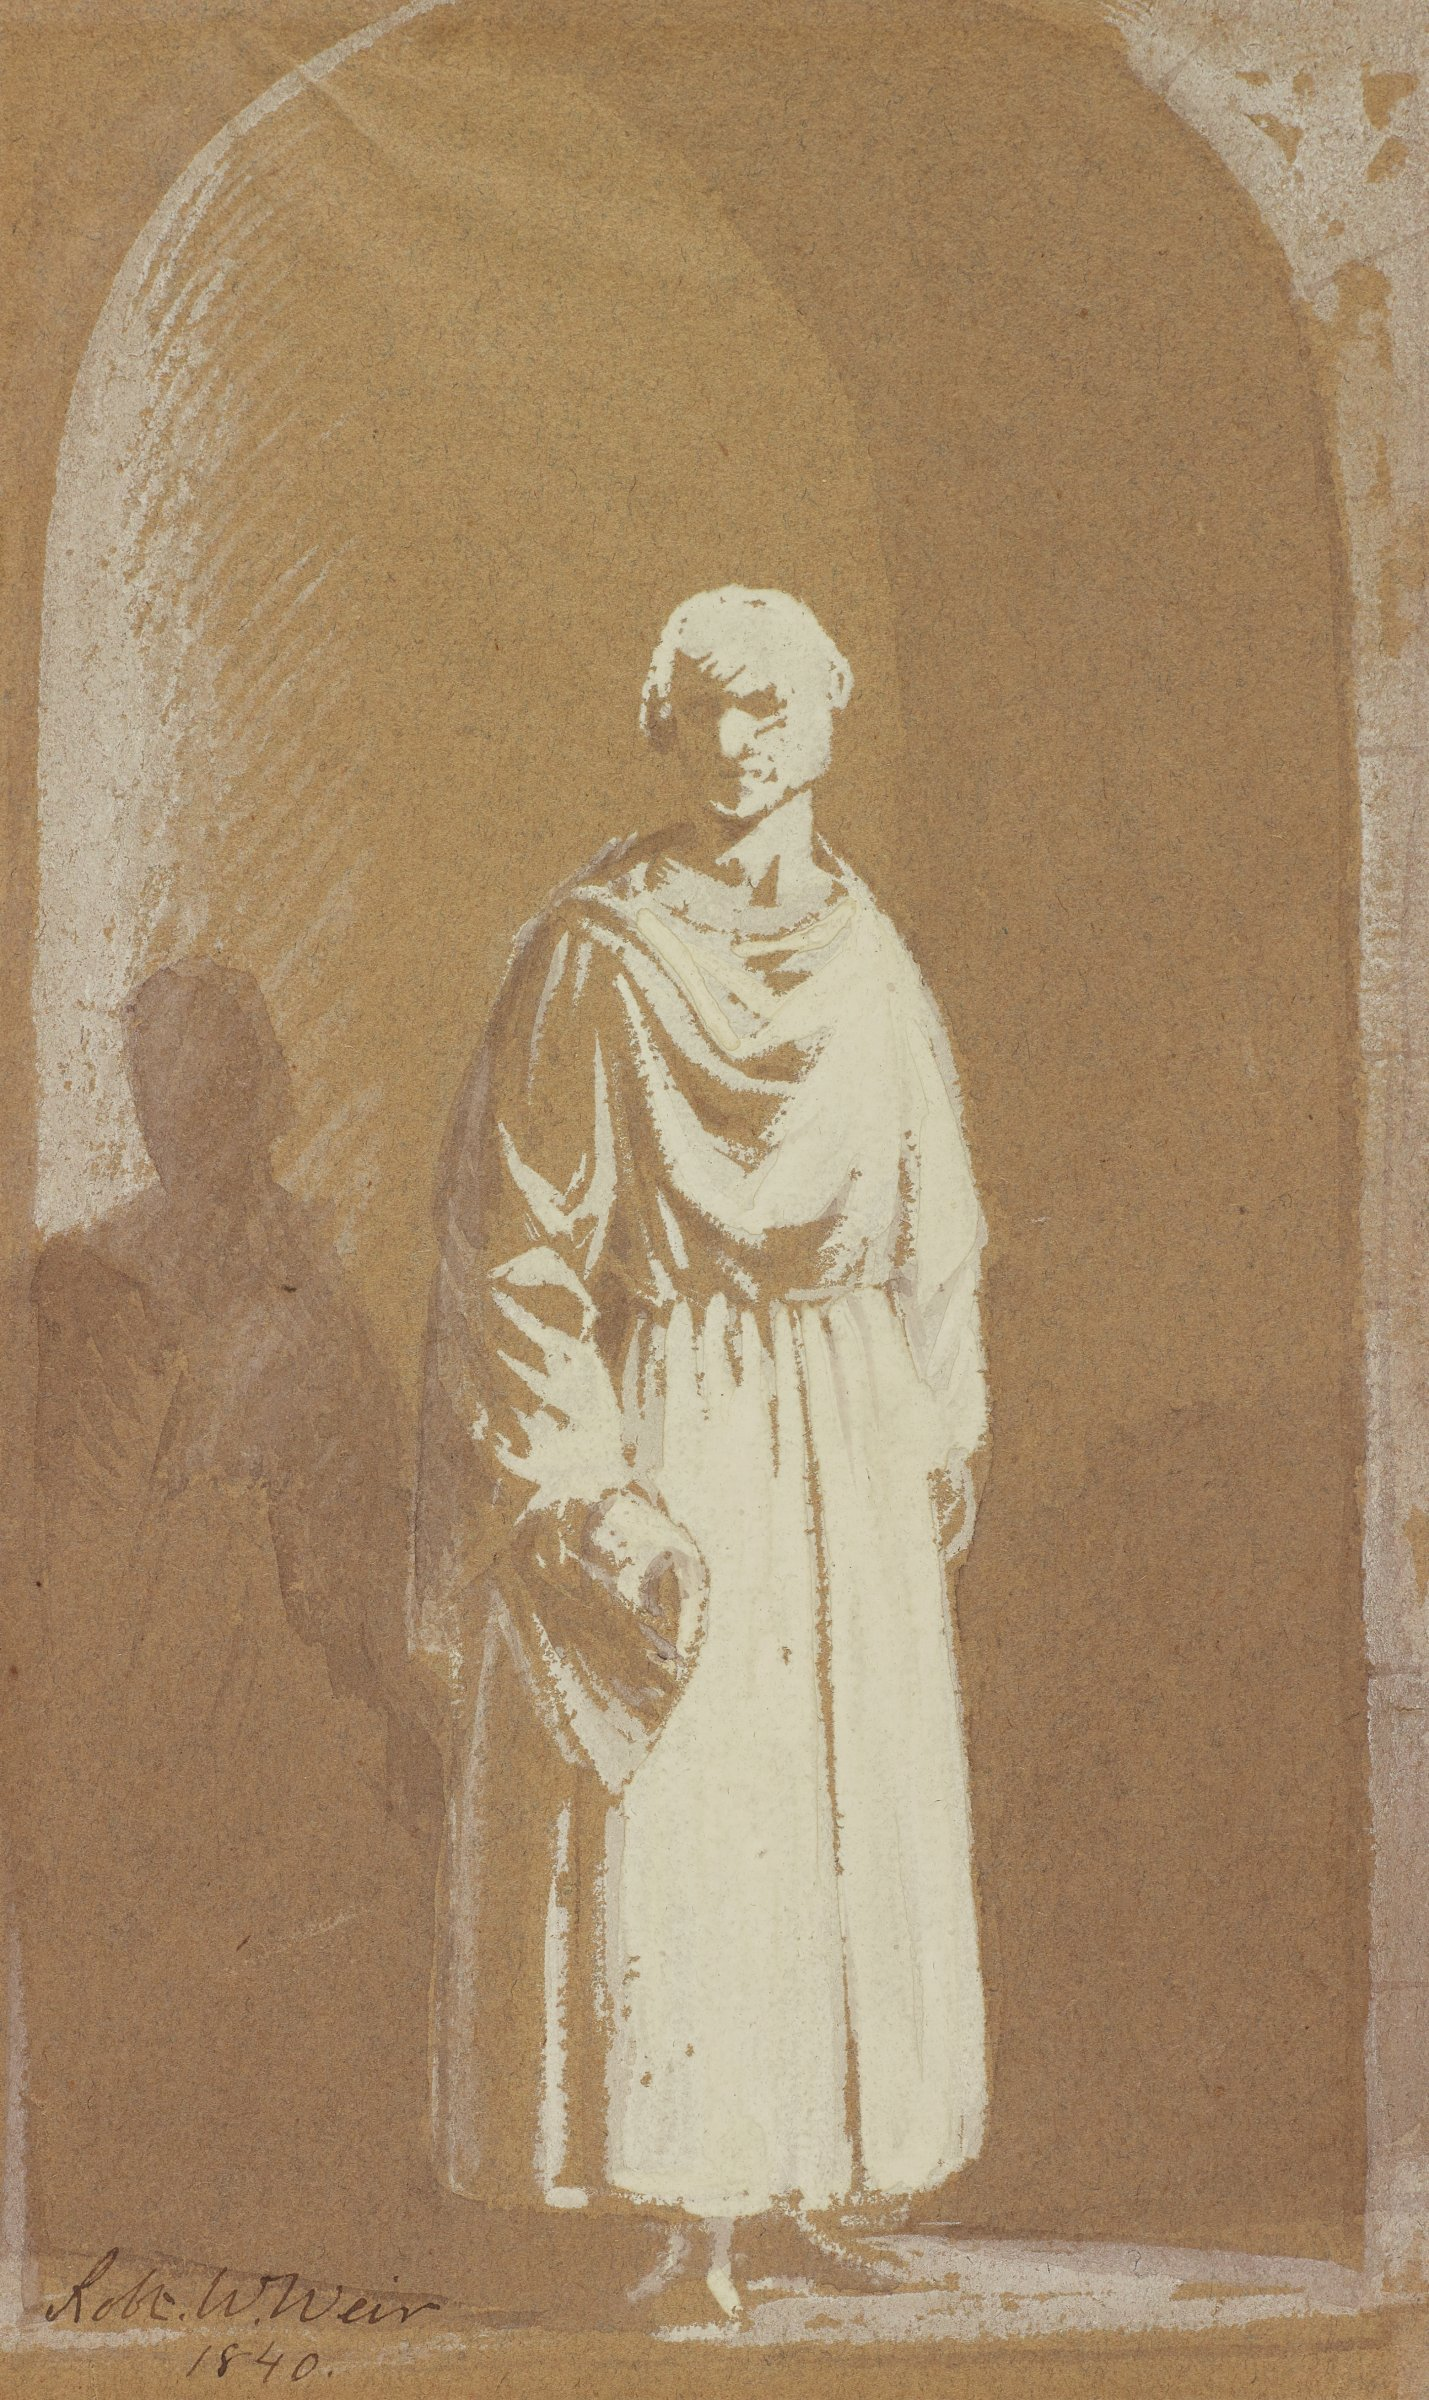 Robed man (perhaps a monk) standing in a Romanesque archway, his shadow cast to the left